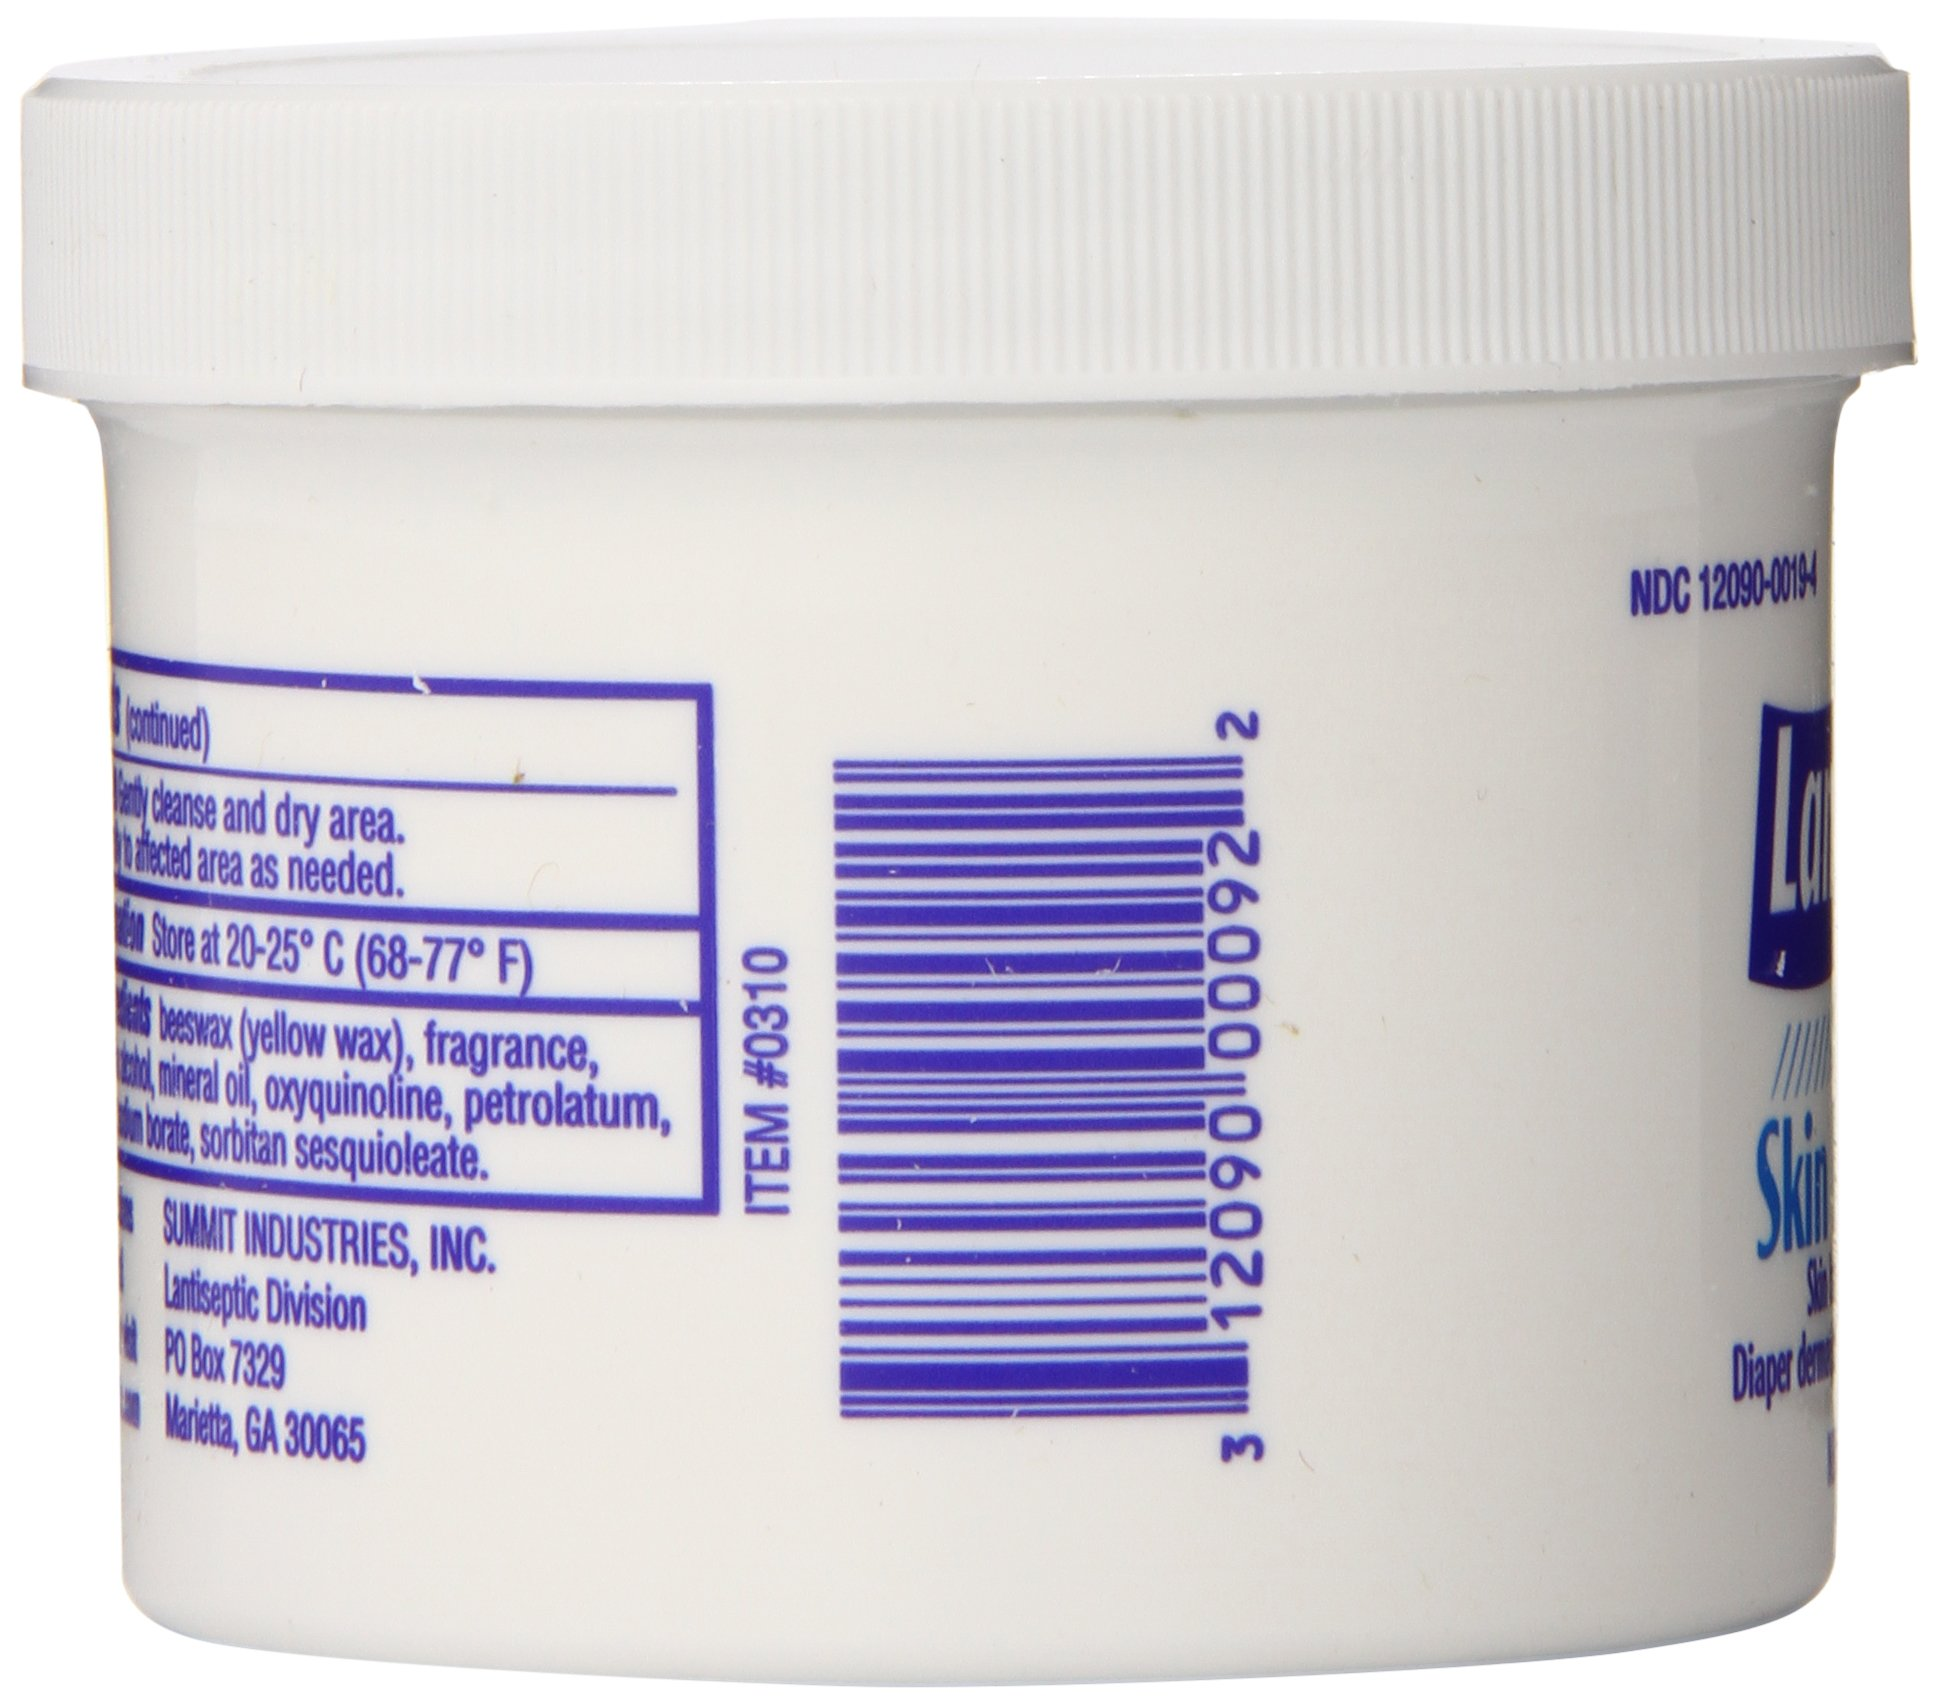 Lantiseptic Skin Protectant Ointment, 4.5 Ounce (Pack of 24)